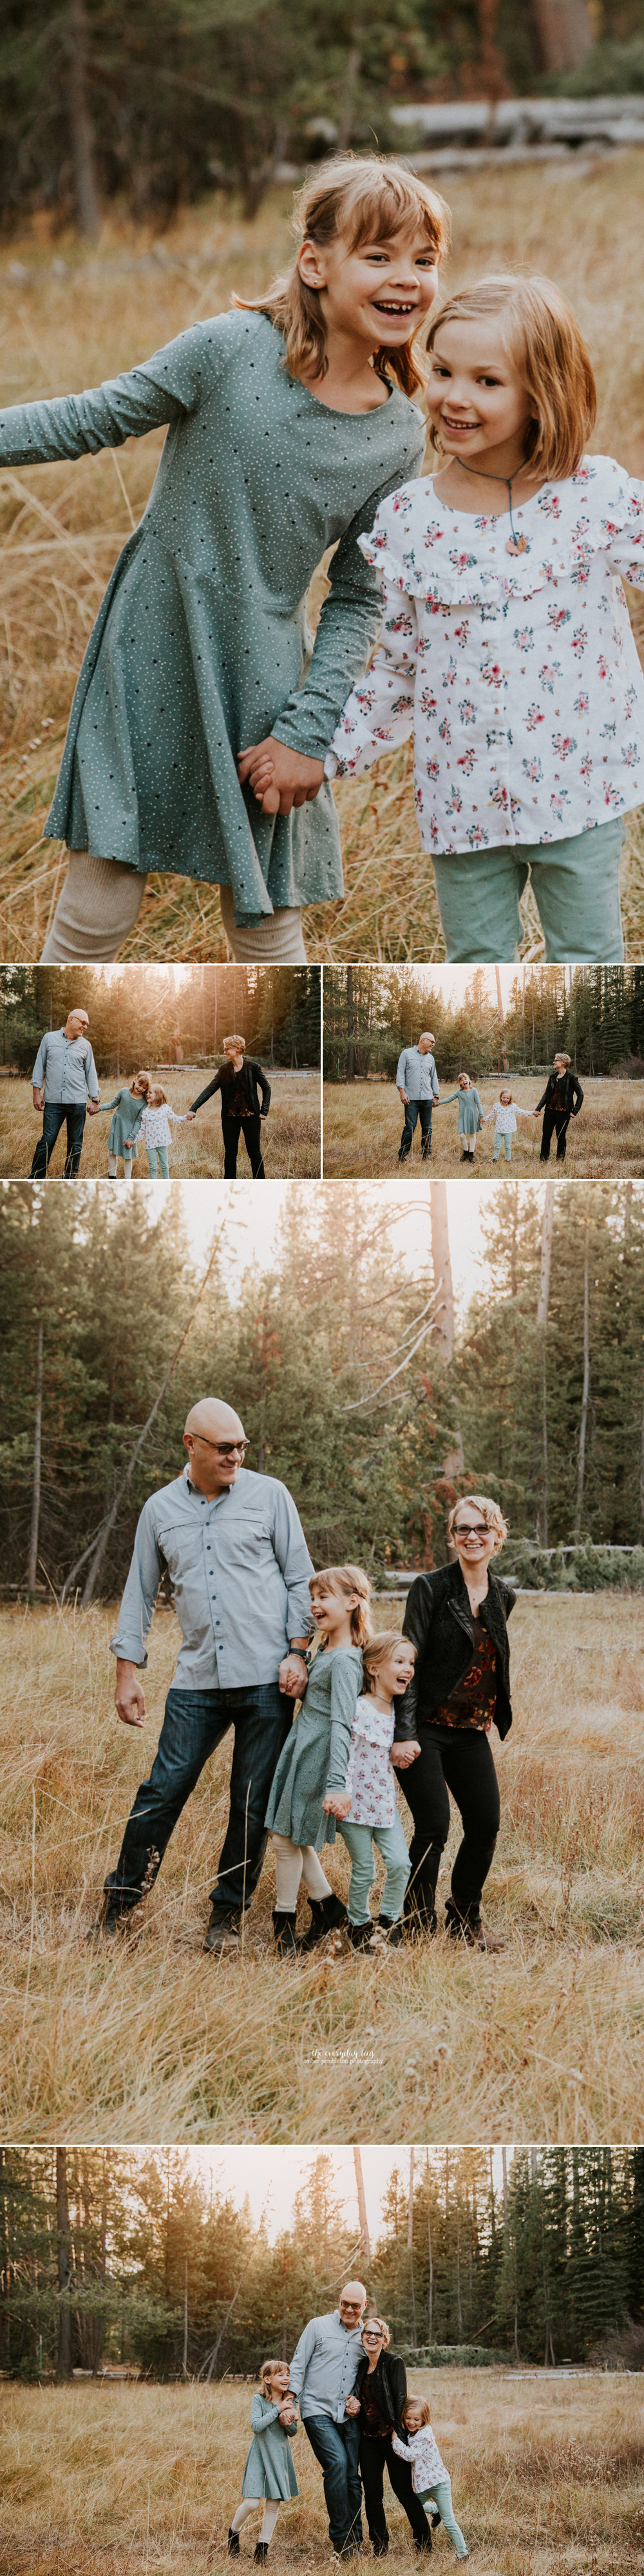 lake-tahoe-family-photography.jpg